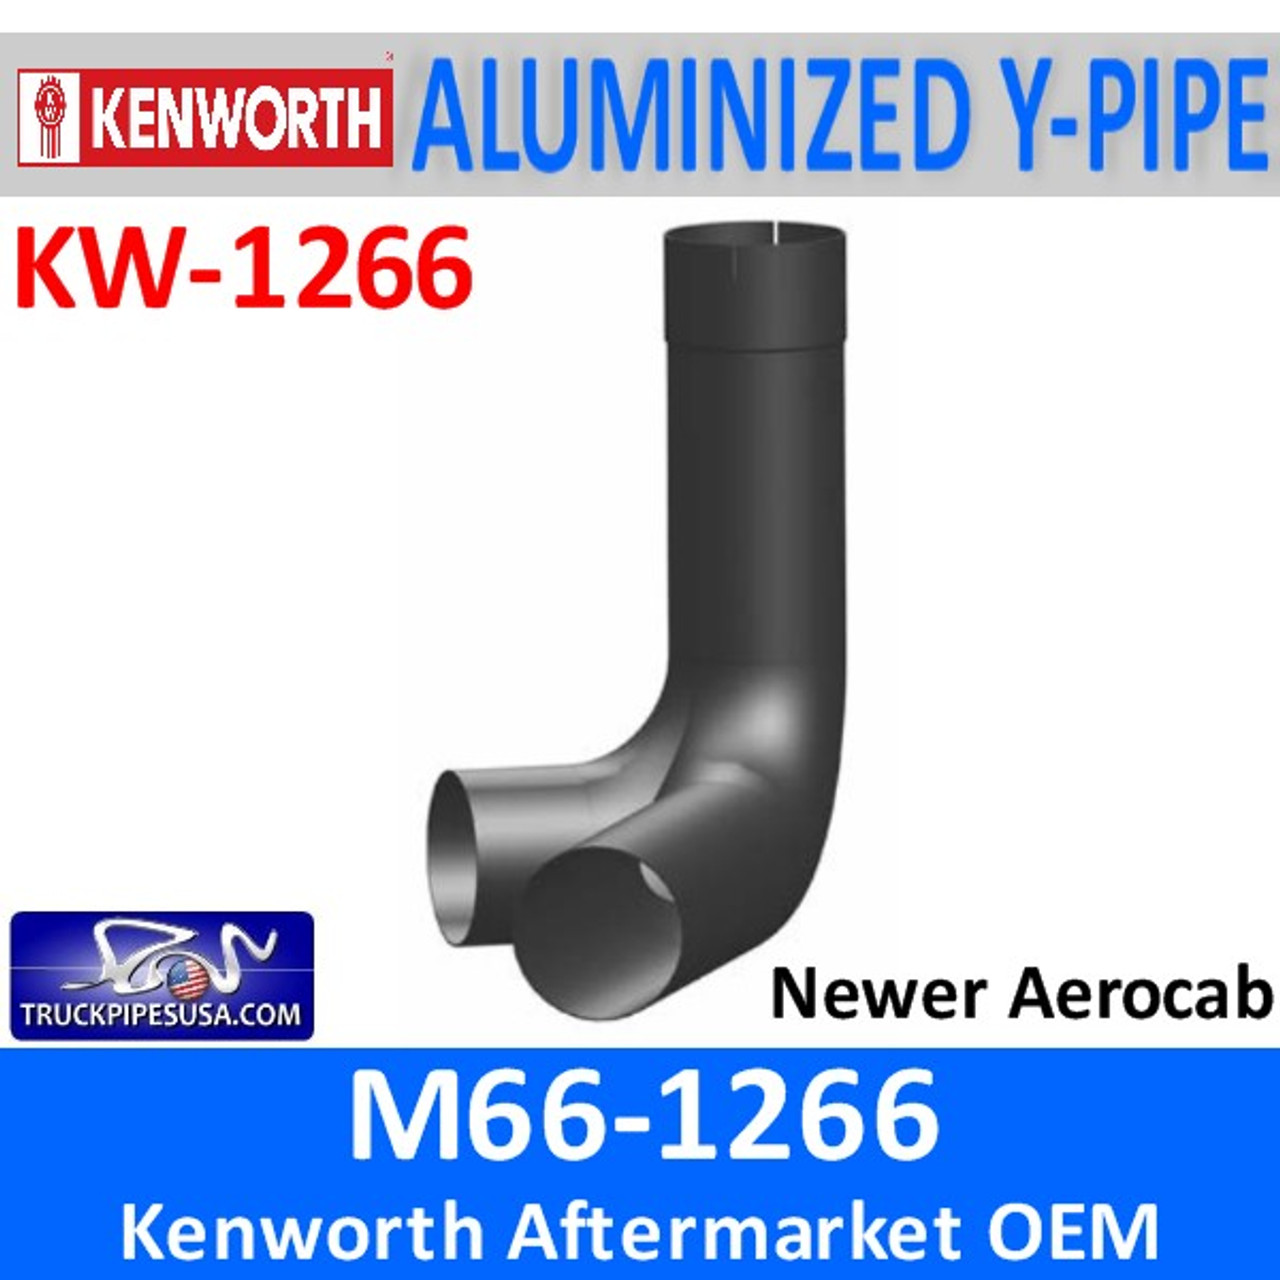 M66-1266 Kenworth Y-Pipe Exhaust for Newer Aerocab KW-1266